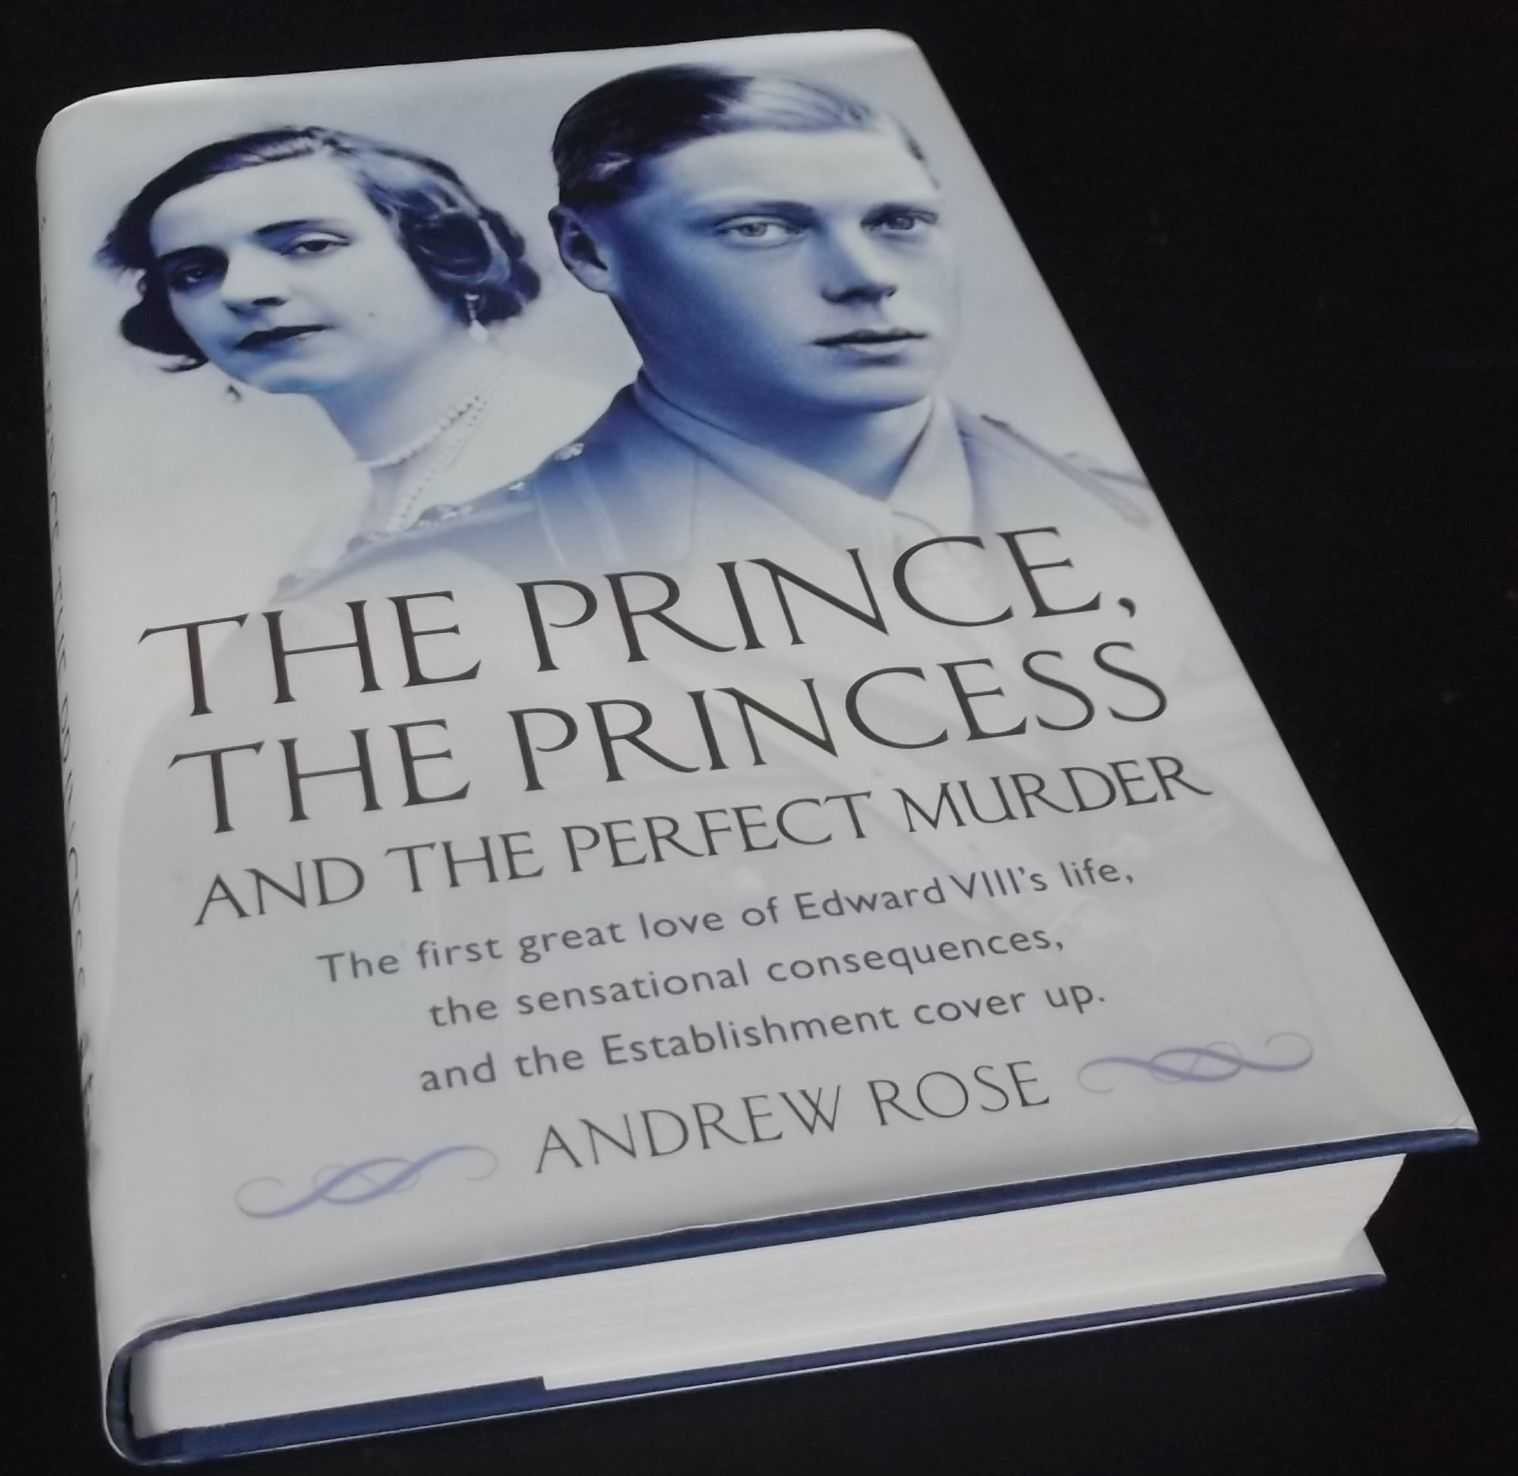 ANDREW ROSE - The Prince, the Princess and the Perfect Murder